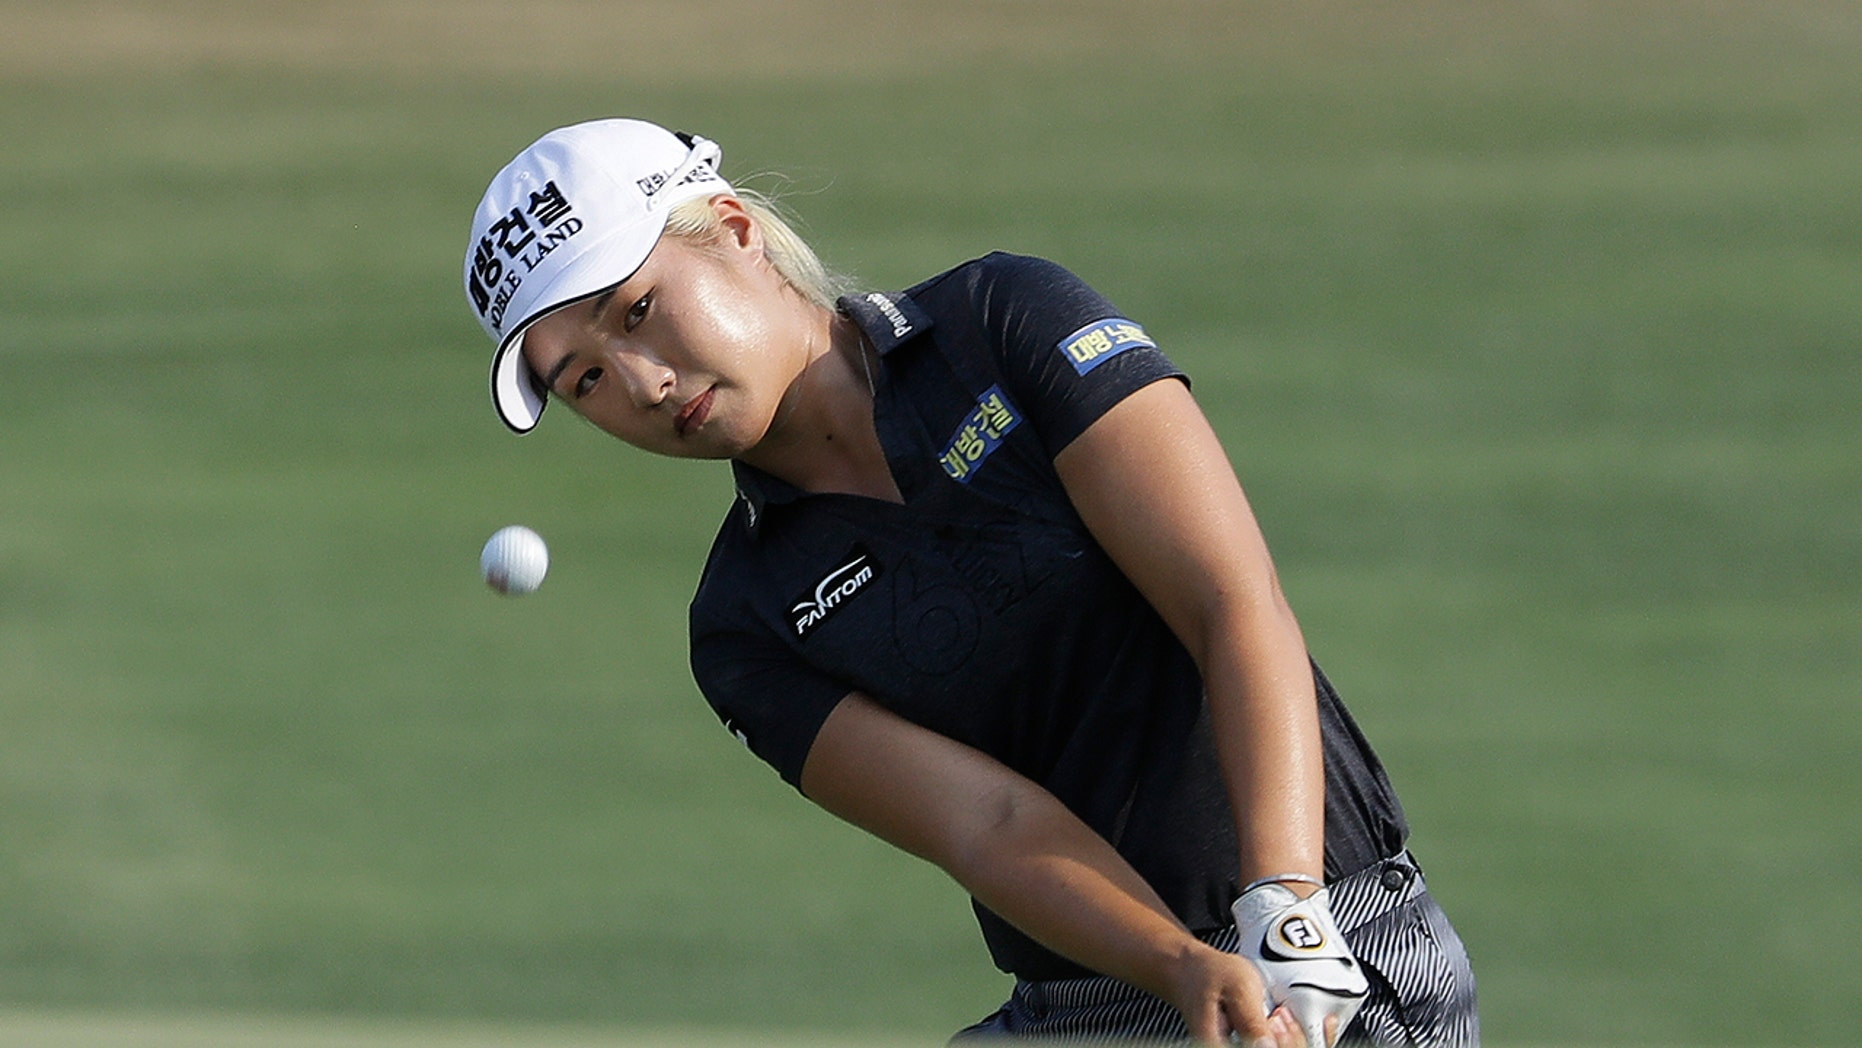 FILE - In this June 2, 2019, file photo, Jeongeun Lee6, of South Korea, chips to the 16th green during the final round of the U.S. Women's Open golf tournament, in Charleston, S.C. (AP Photo/Steve Helber, File)